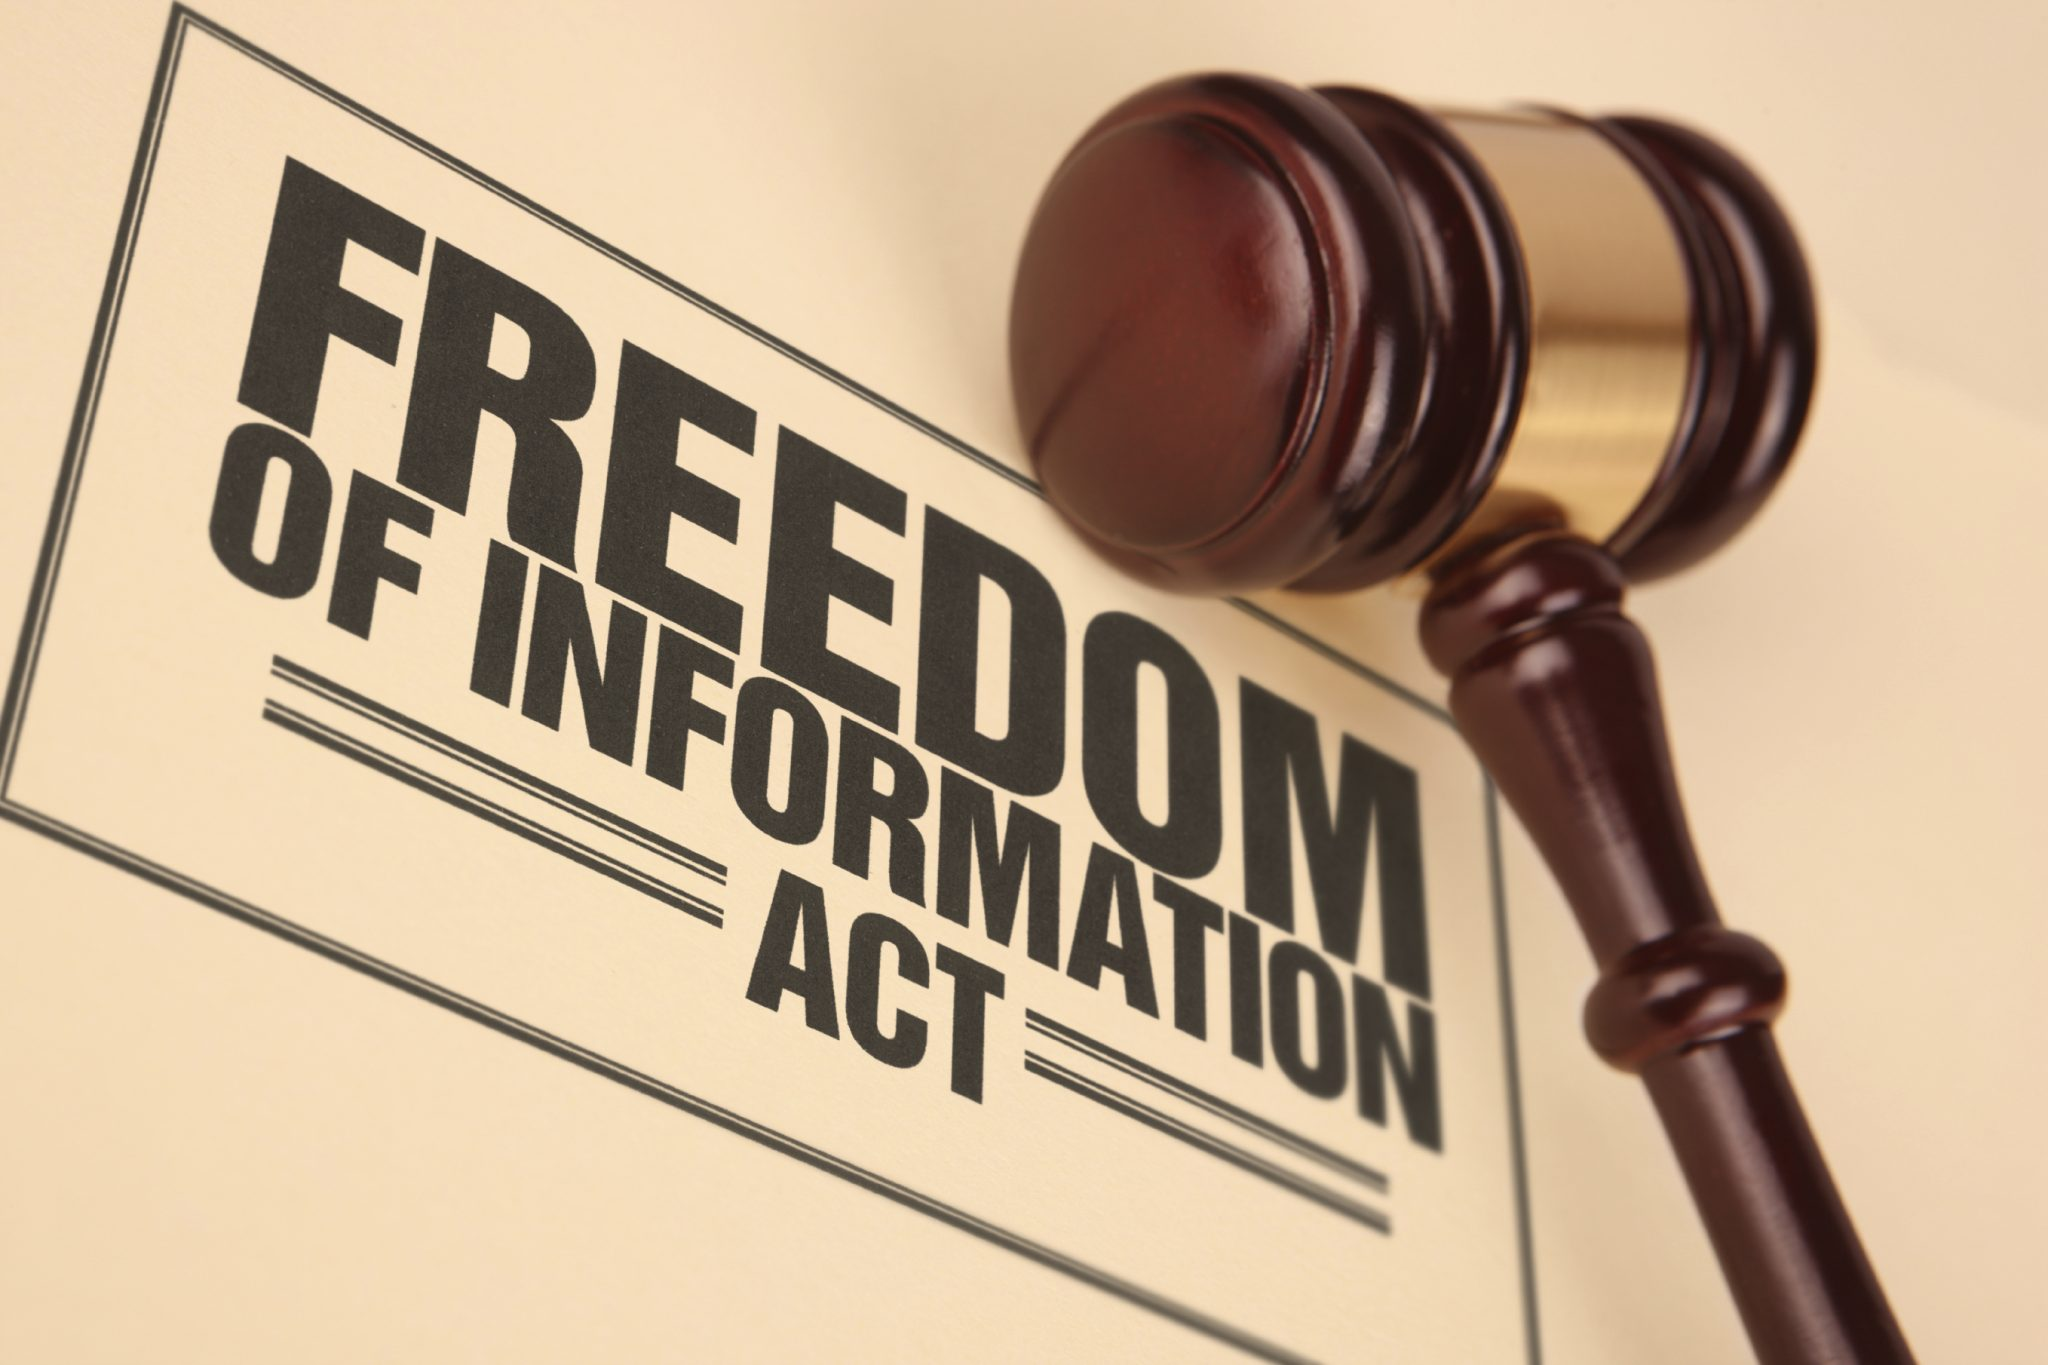 Nine months and counting until Freedom of Information comes to the RSL sector